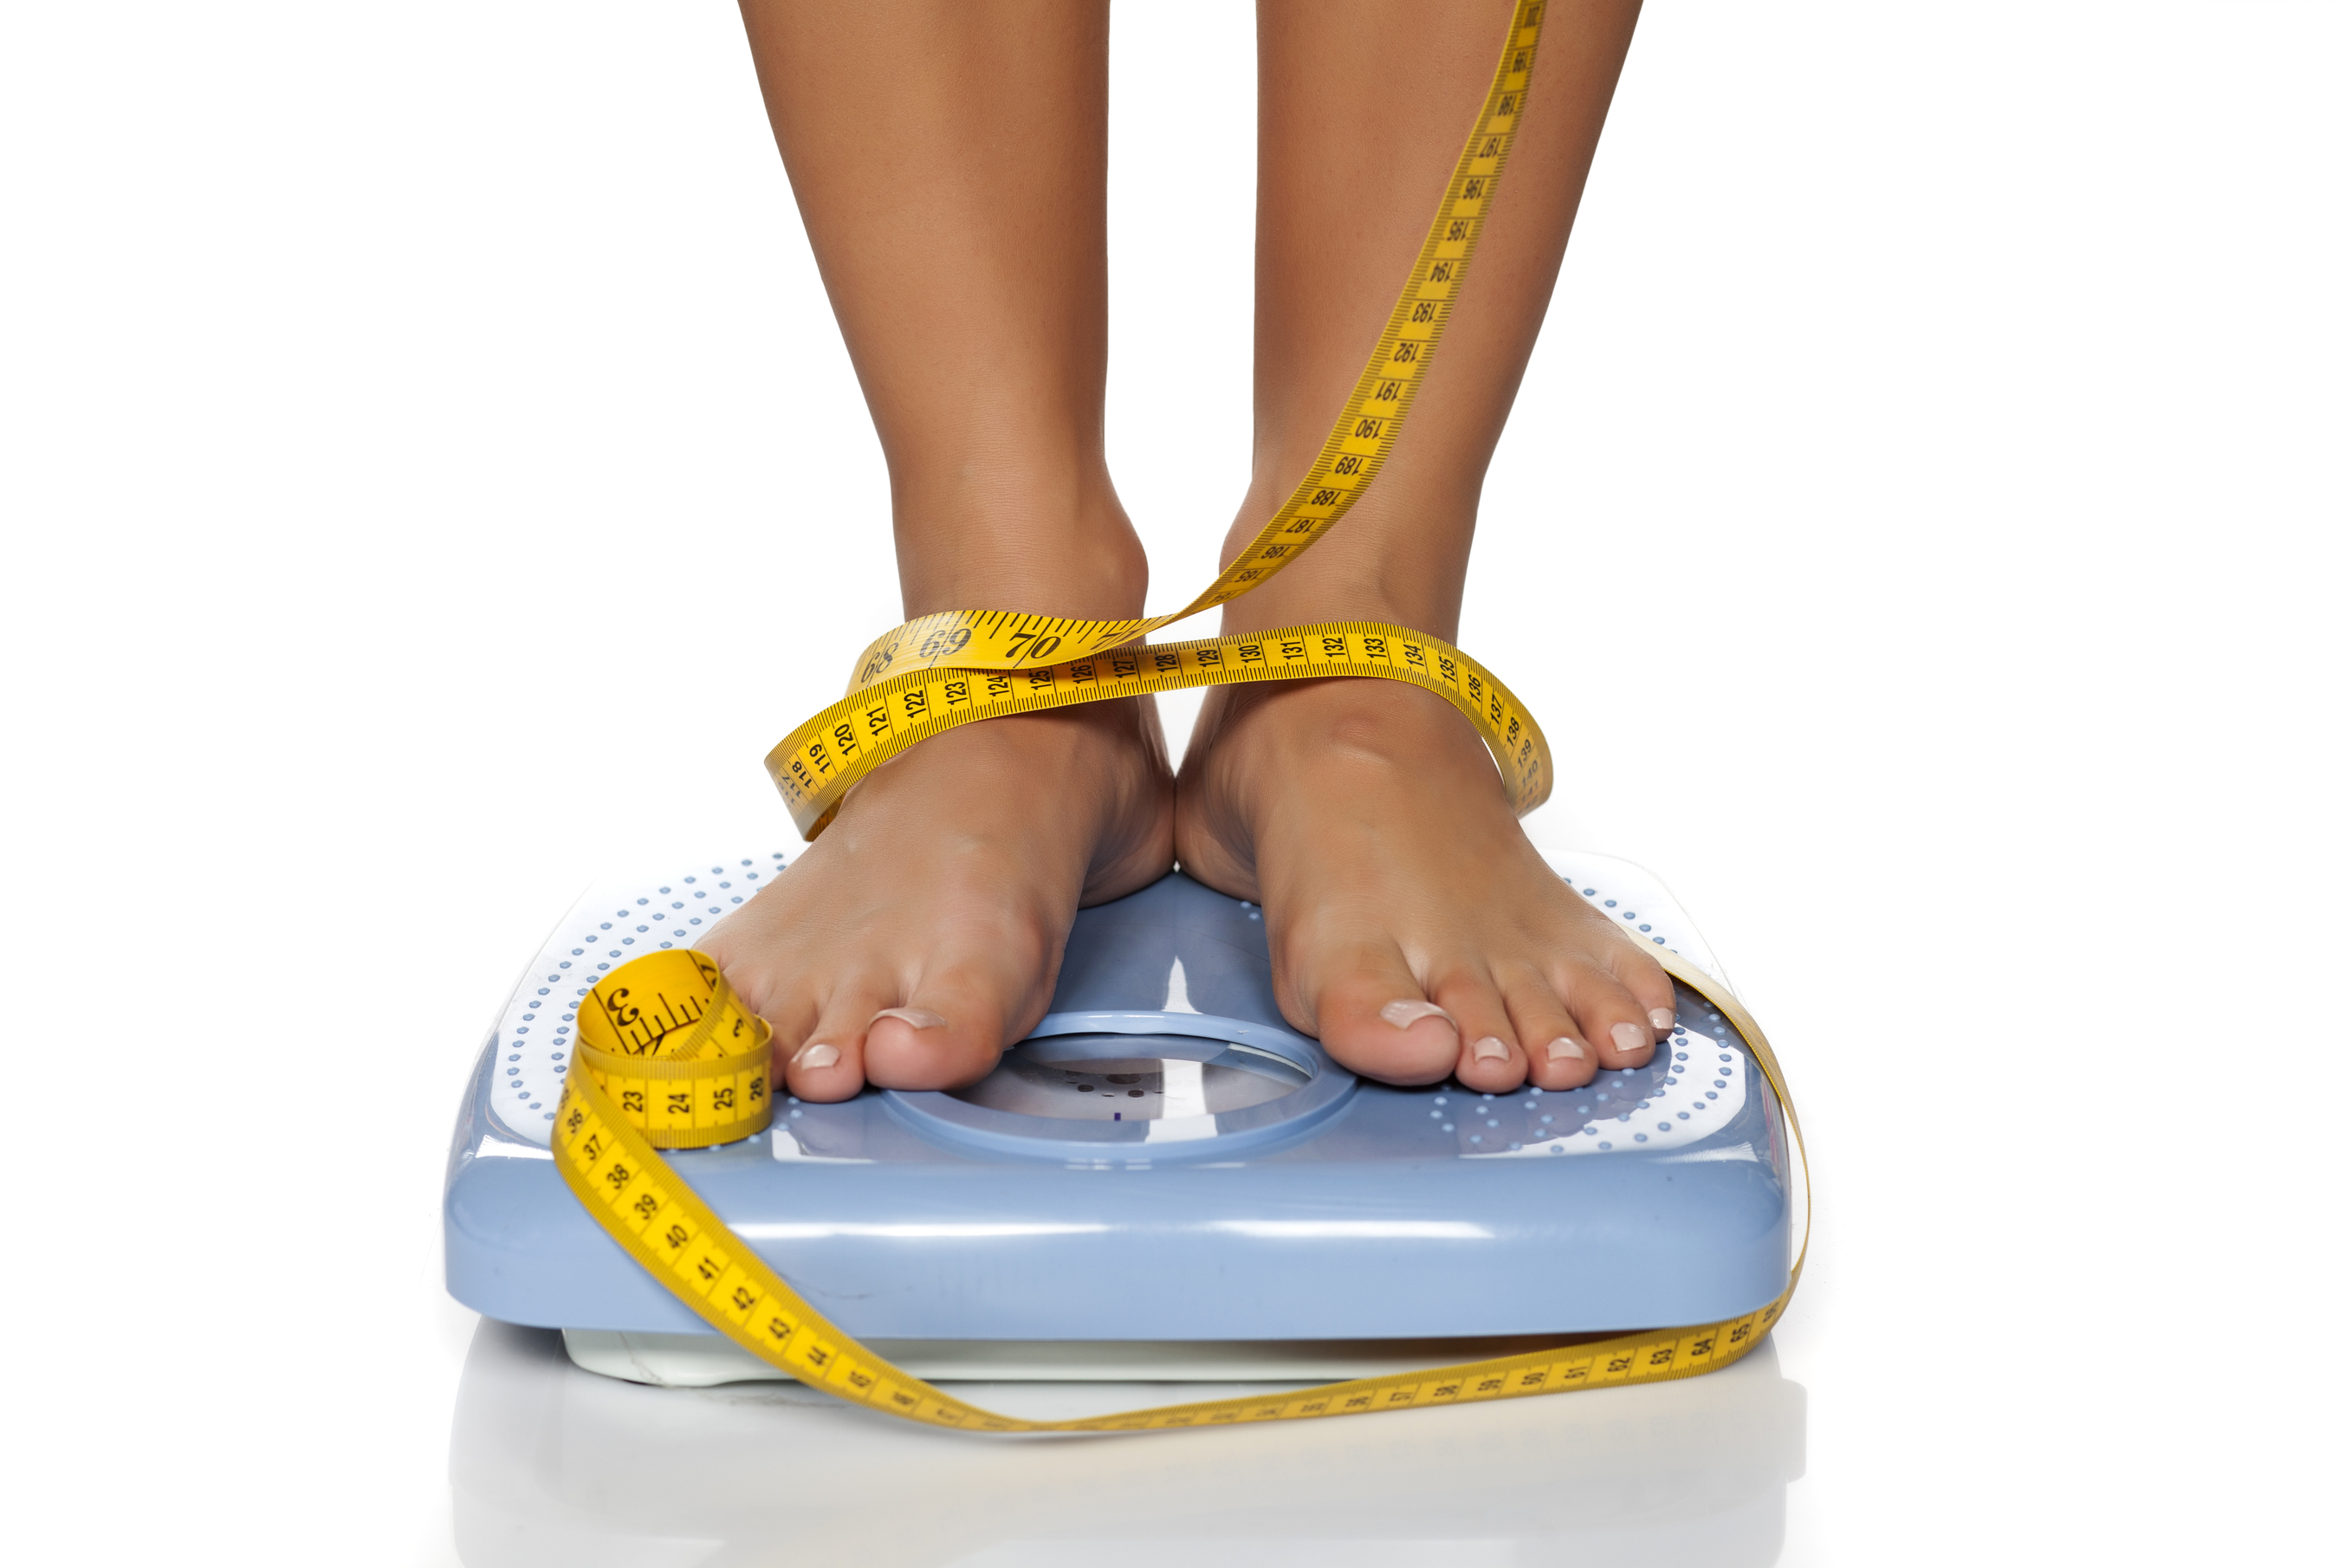 Don't Let Your Scale Shame You